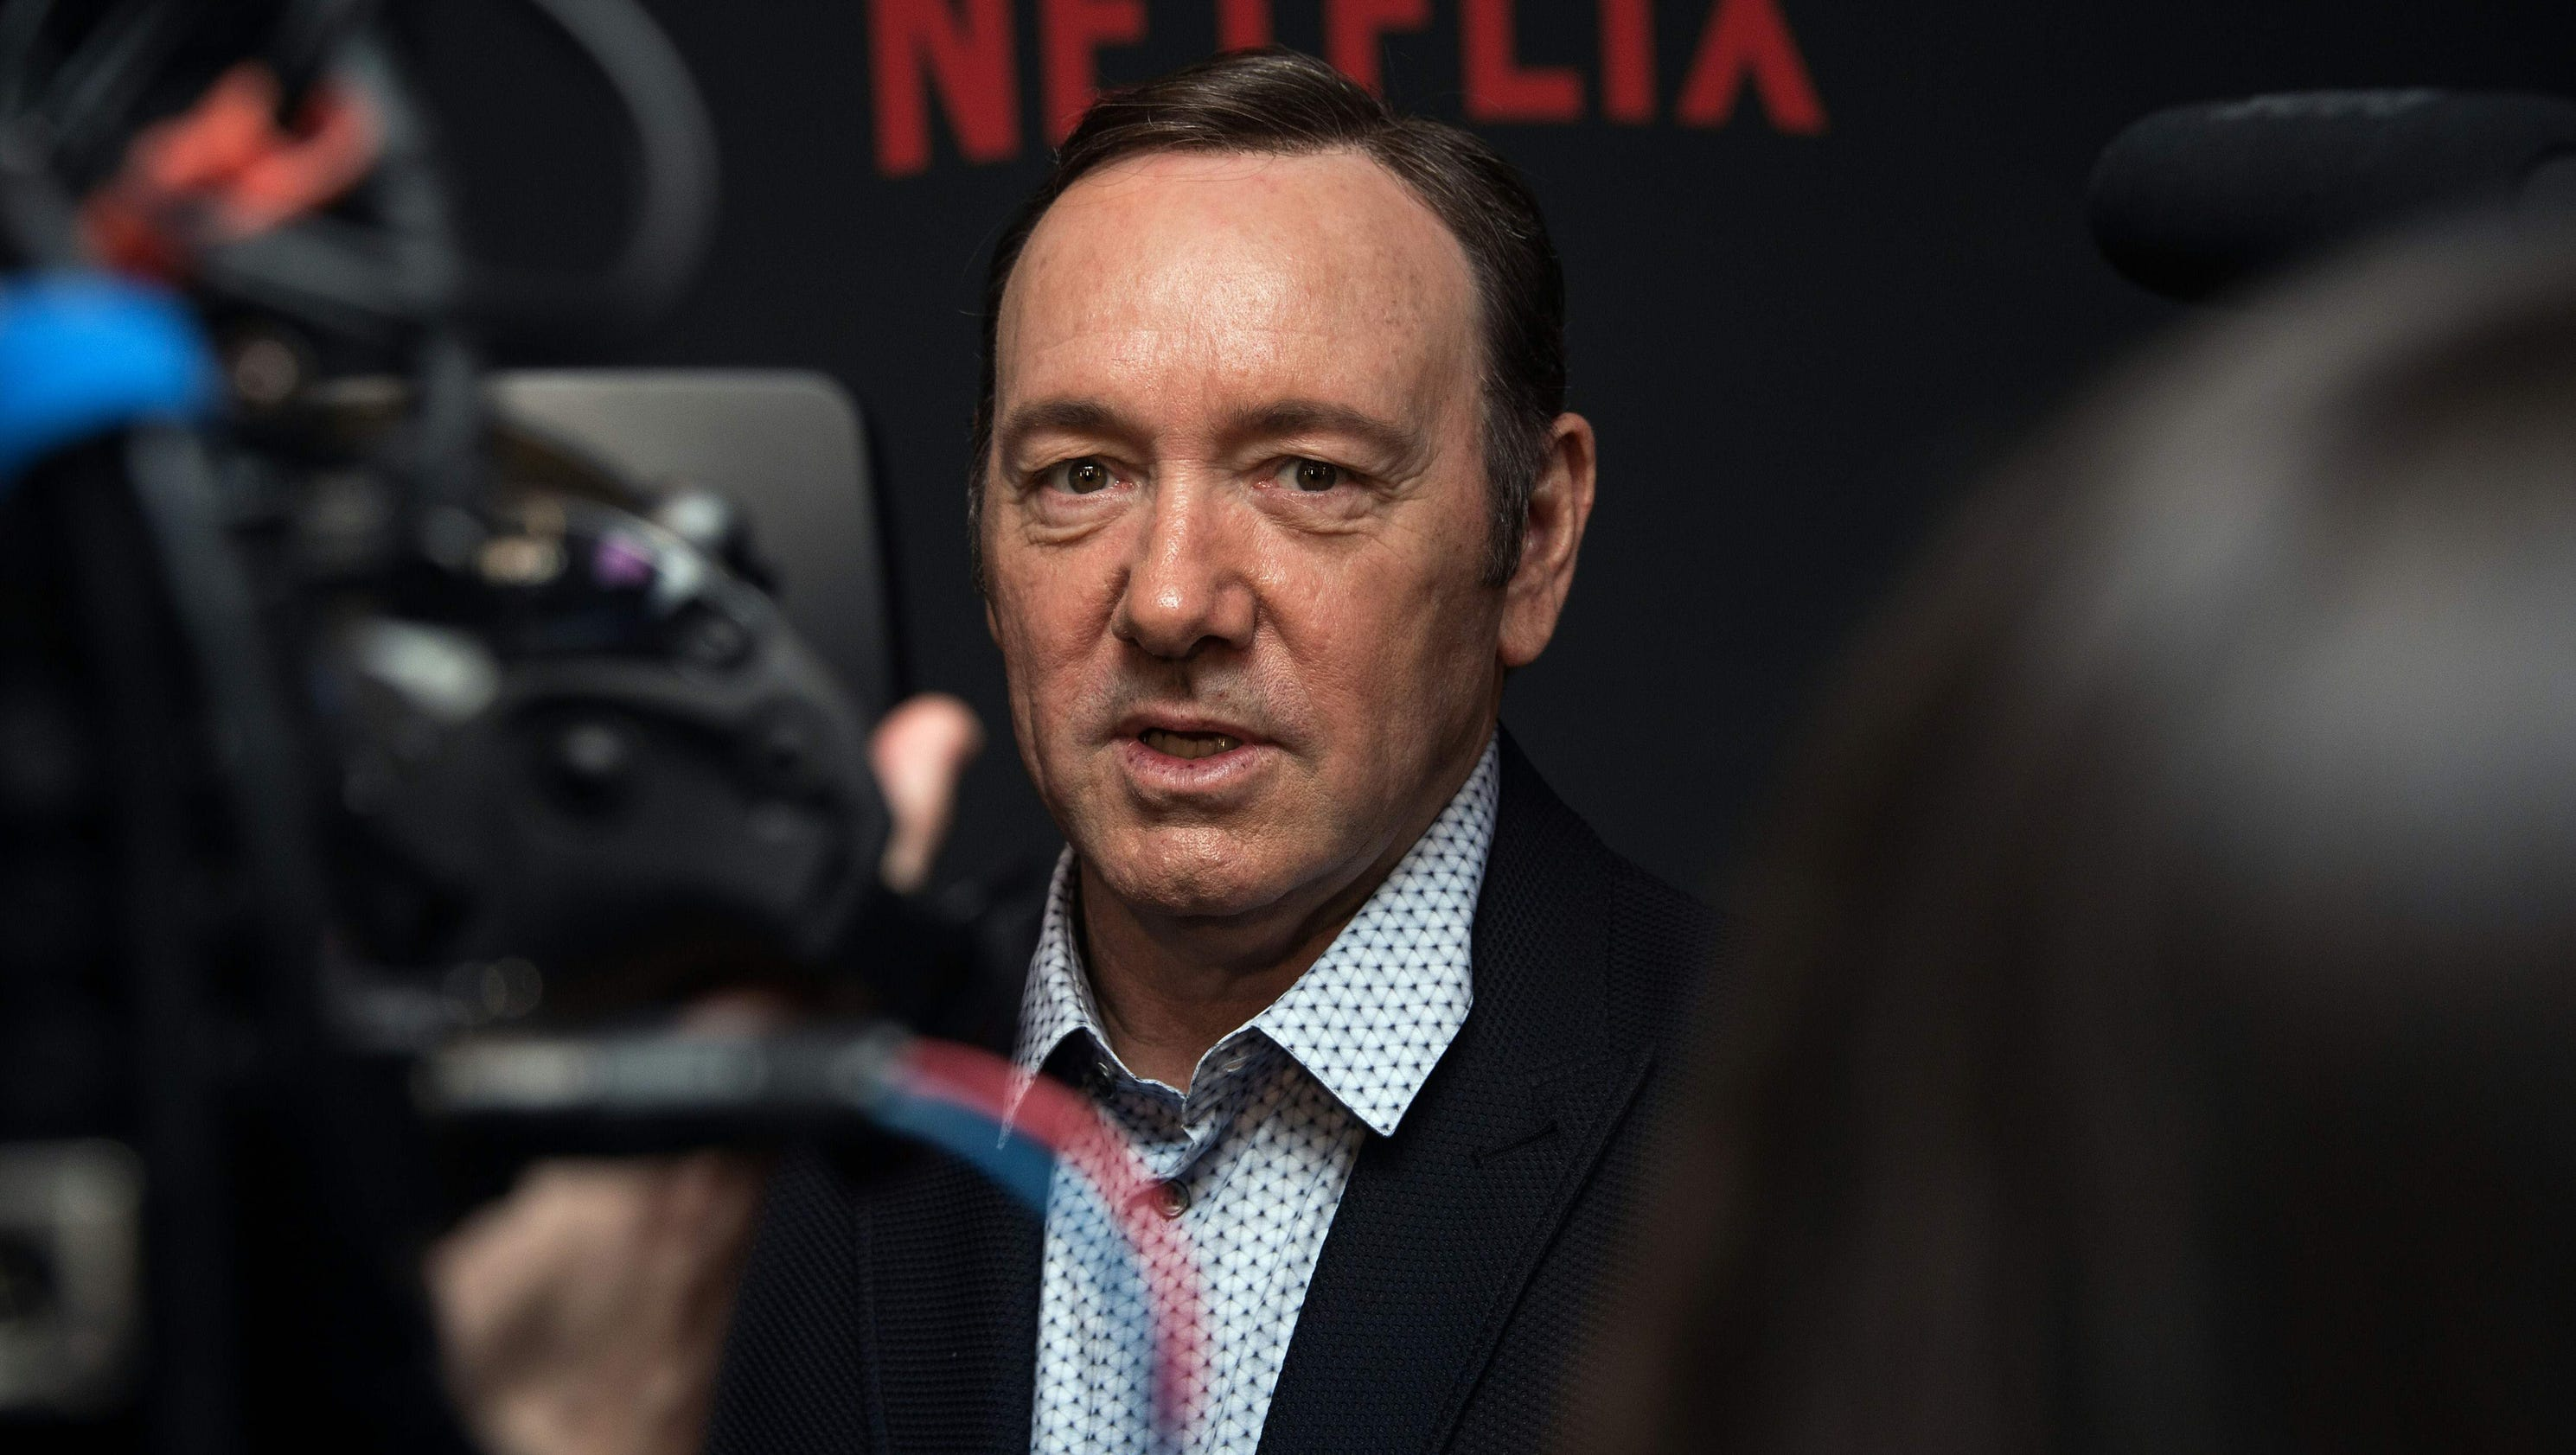 Kevin Spacey scandal: Journalist Gay Talese says accuser should 'suck it up'